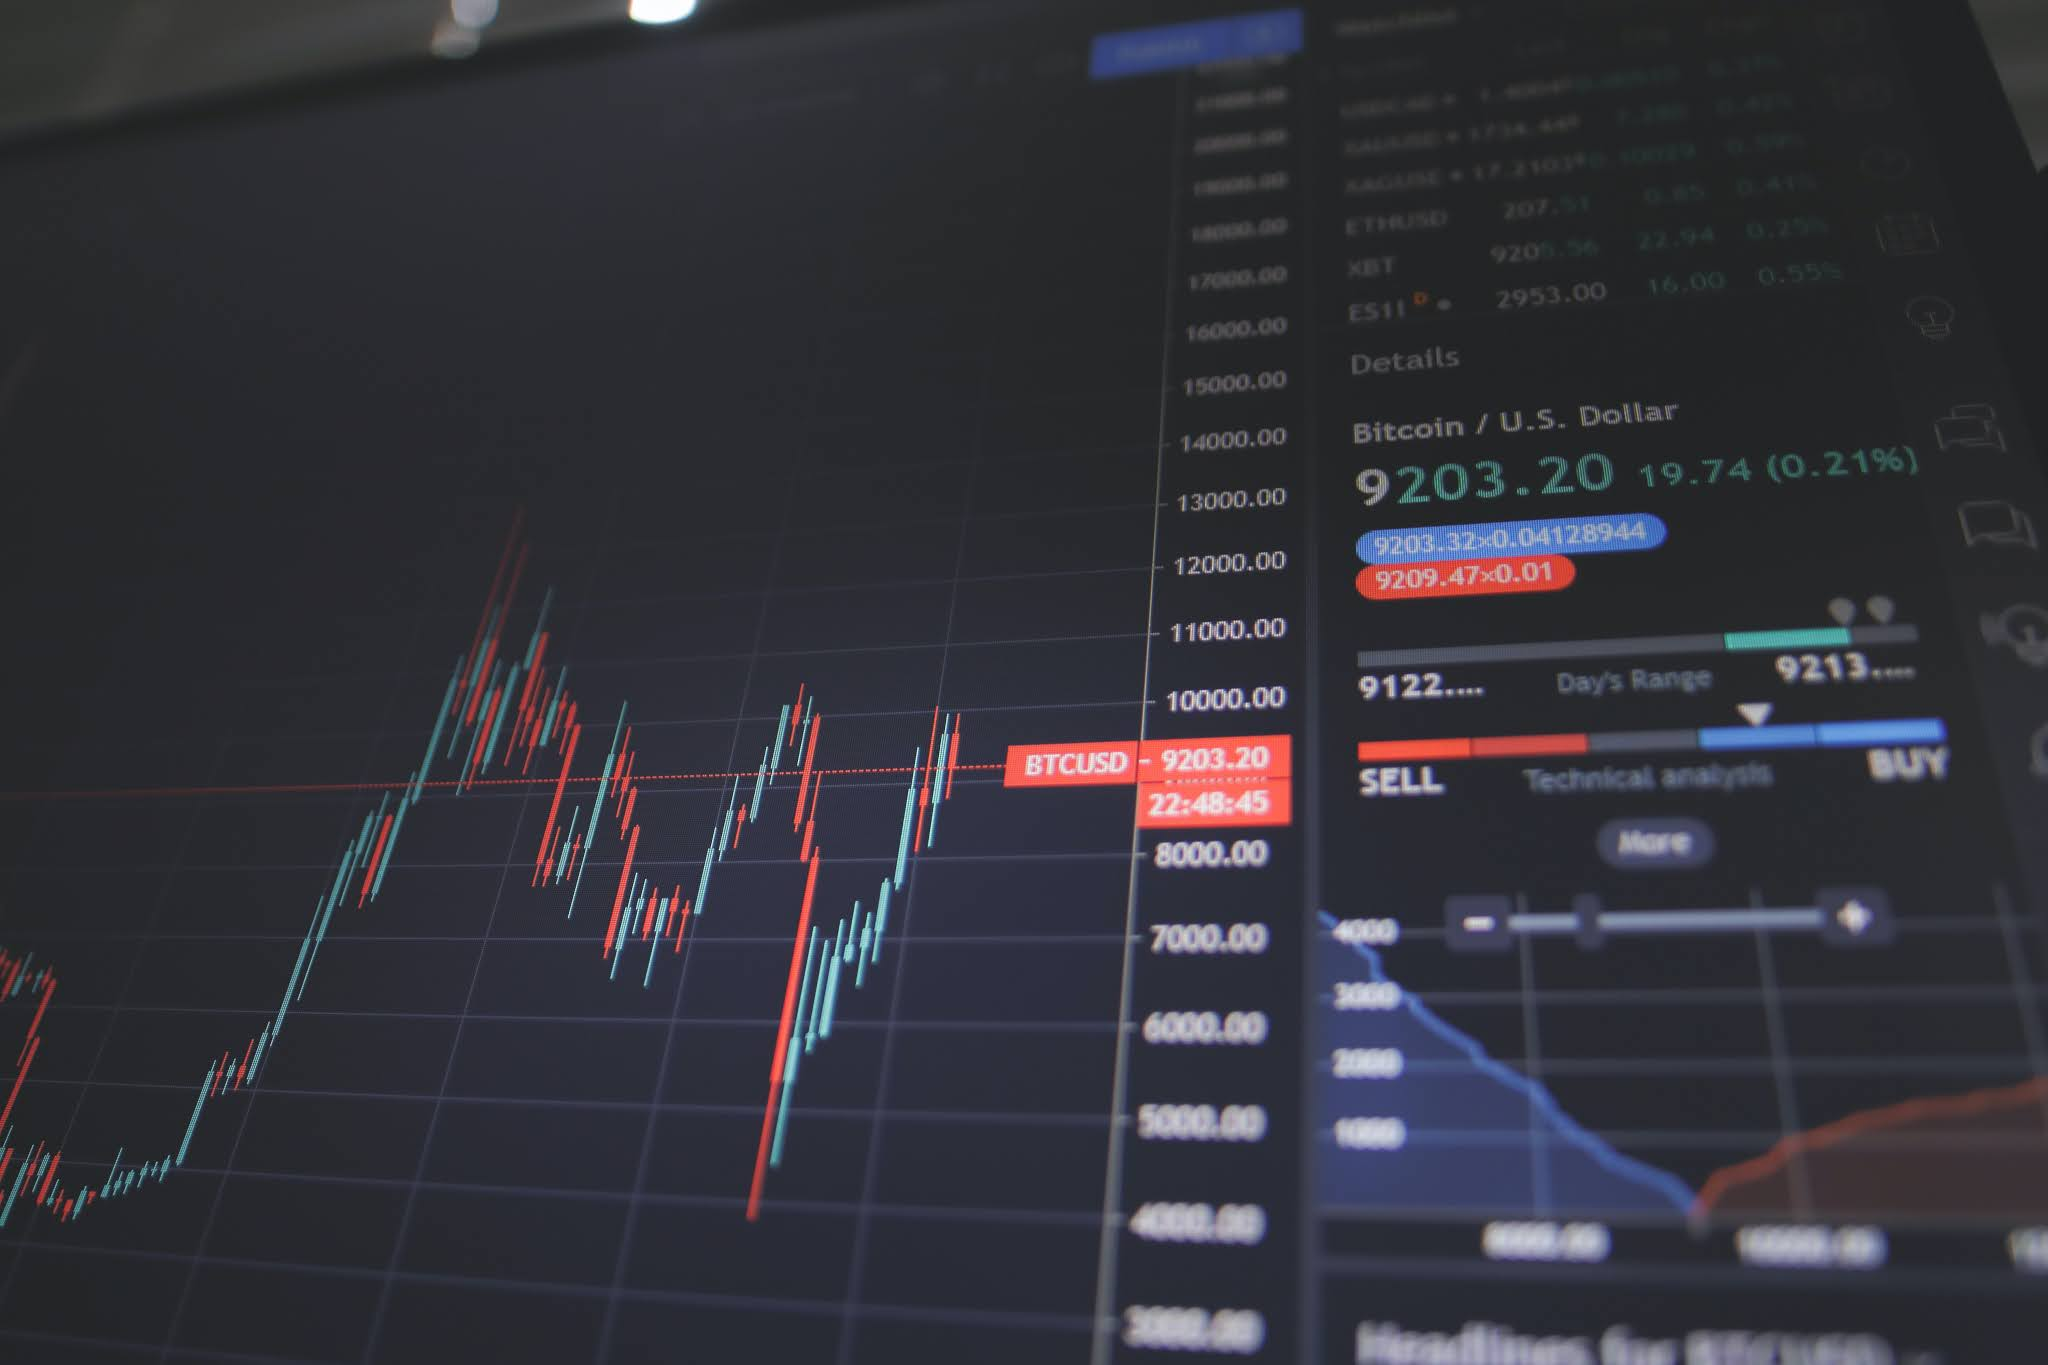 HOW MY MINDSET CHANGED ABOUT THE SHARE MARKET?